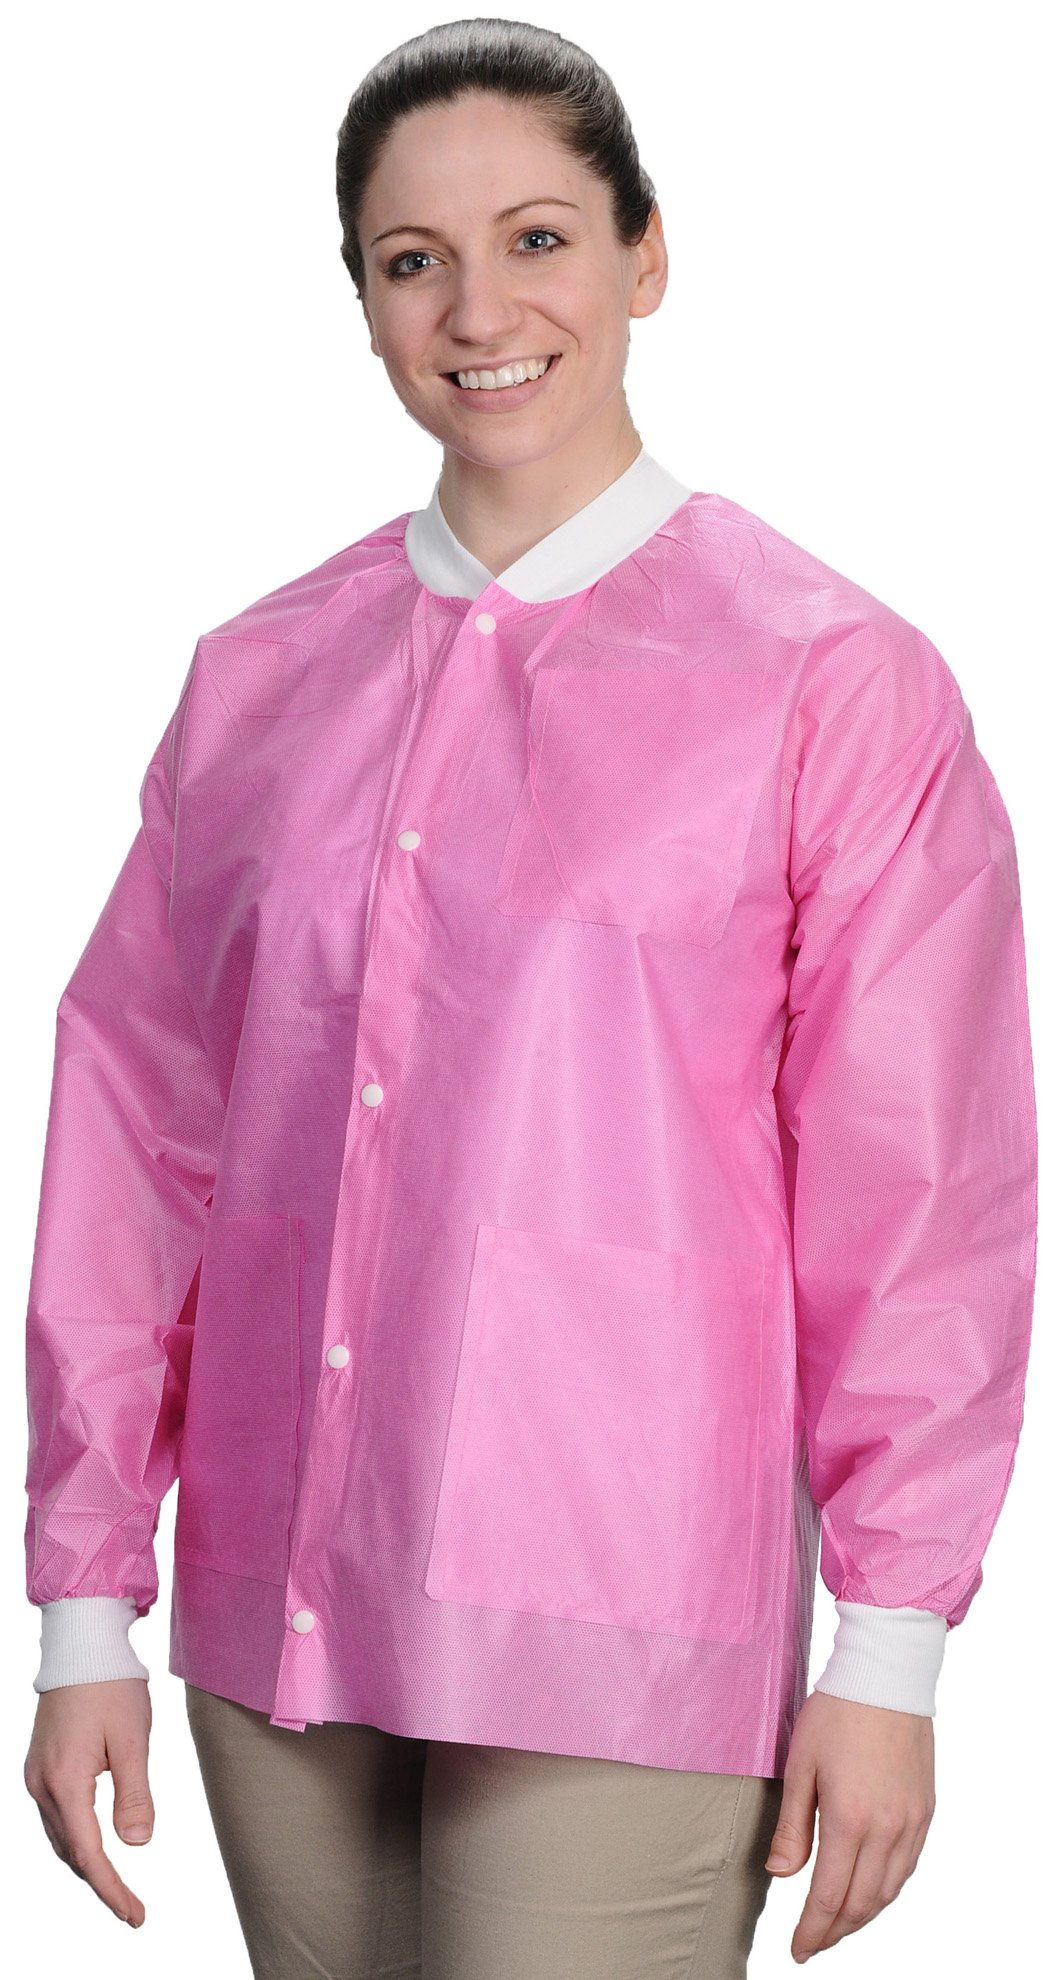 ValuMax 3530RBS Easy Breathe Cool and Strong, No-Wrinkle, Professional Disposable SMS Hip Length Jacket, Raspberry, S, Pack of 10